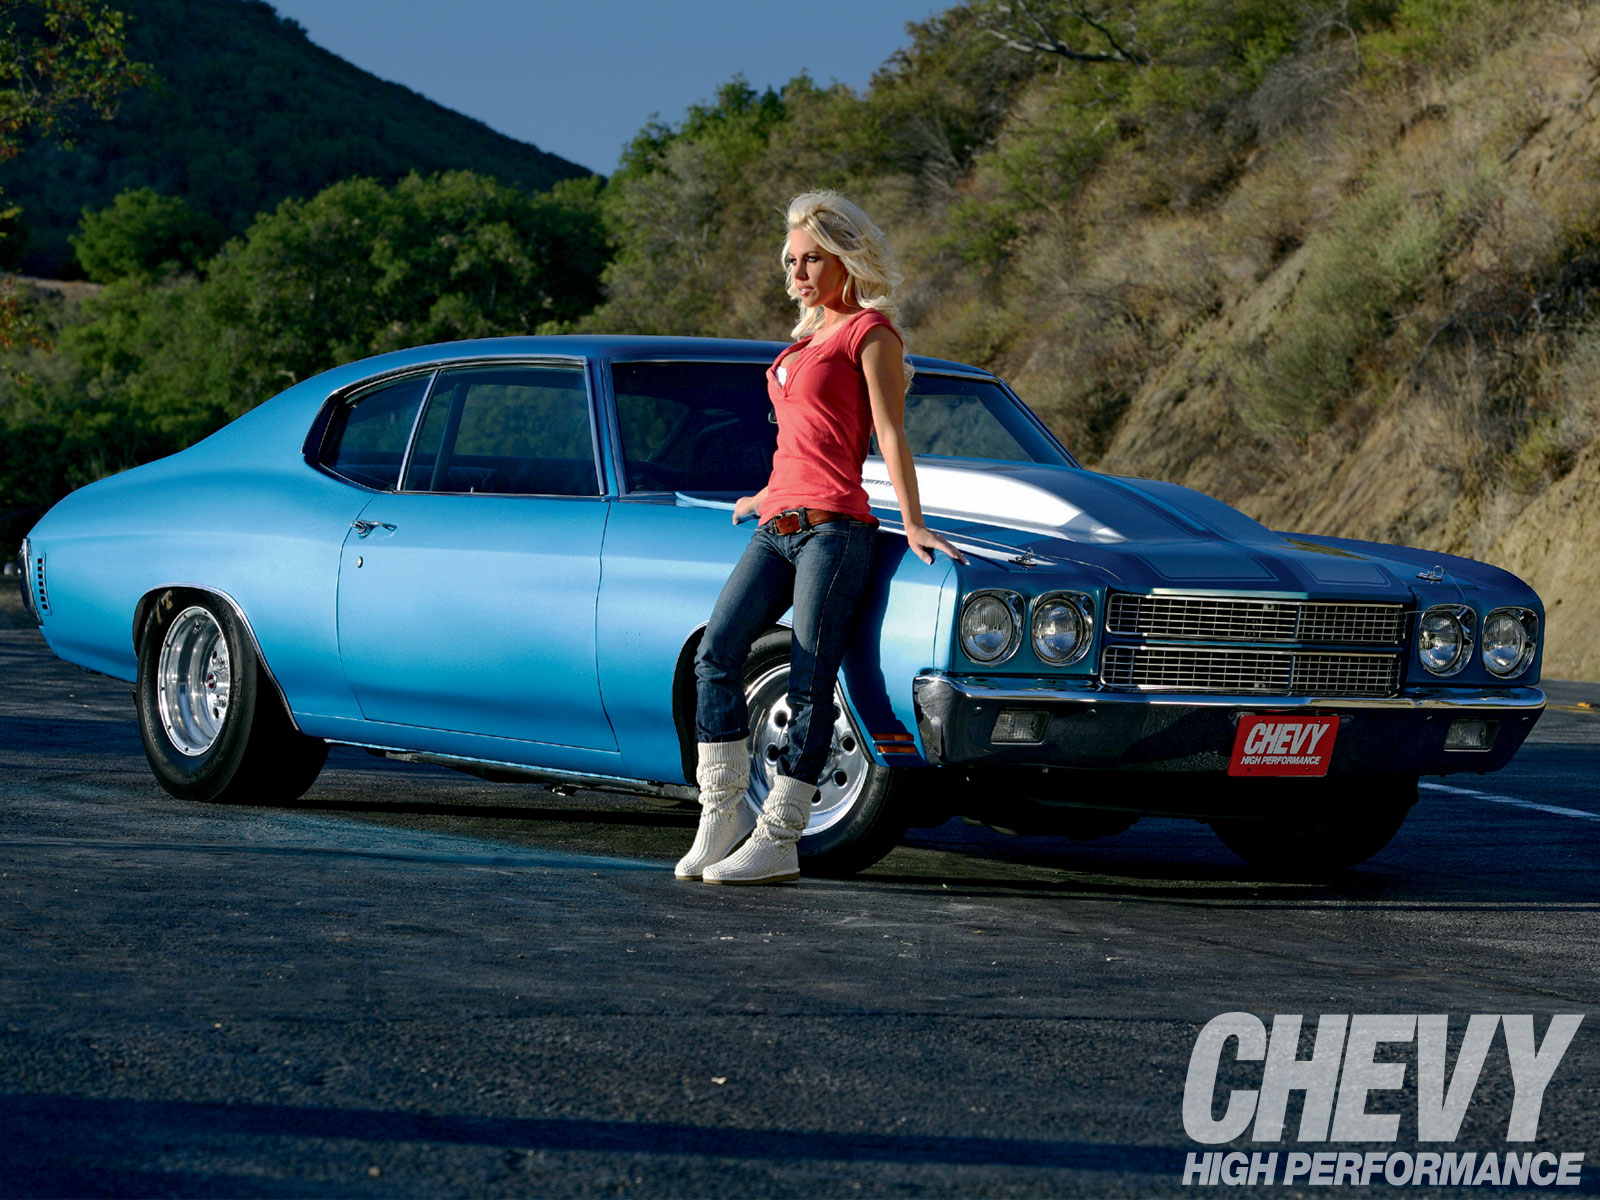 Photos of Hot Girls With Classic Cars Complex